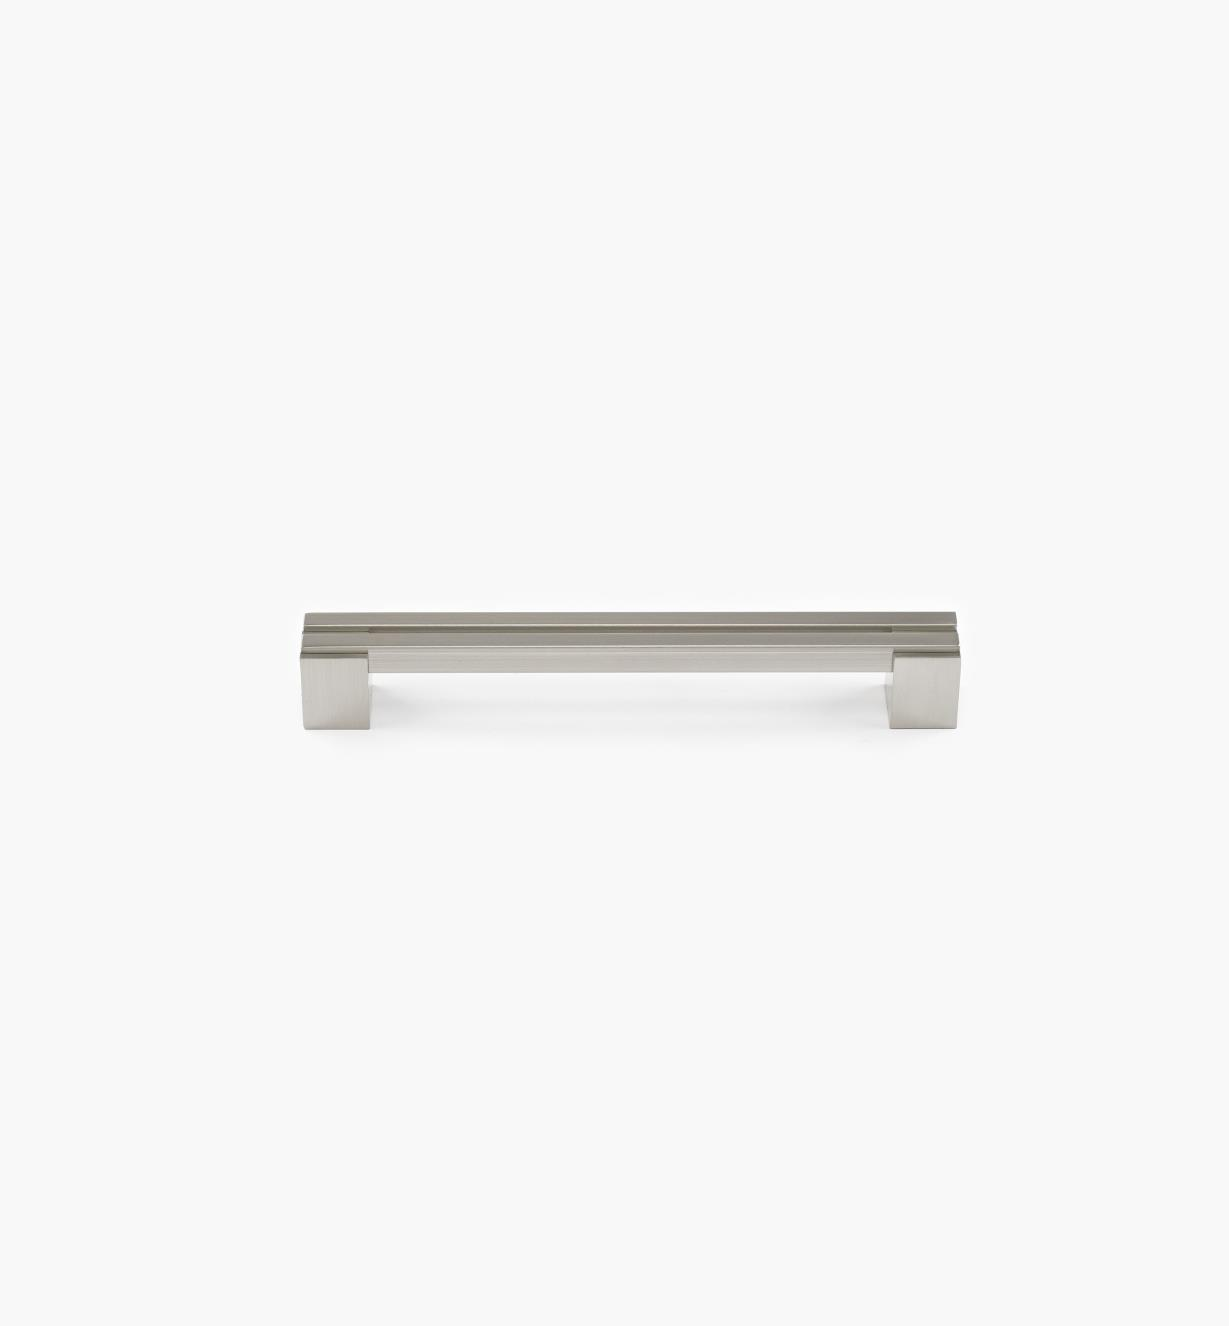 02W1352 - Parallel 192mm Satin Nickel Handle, each